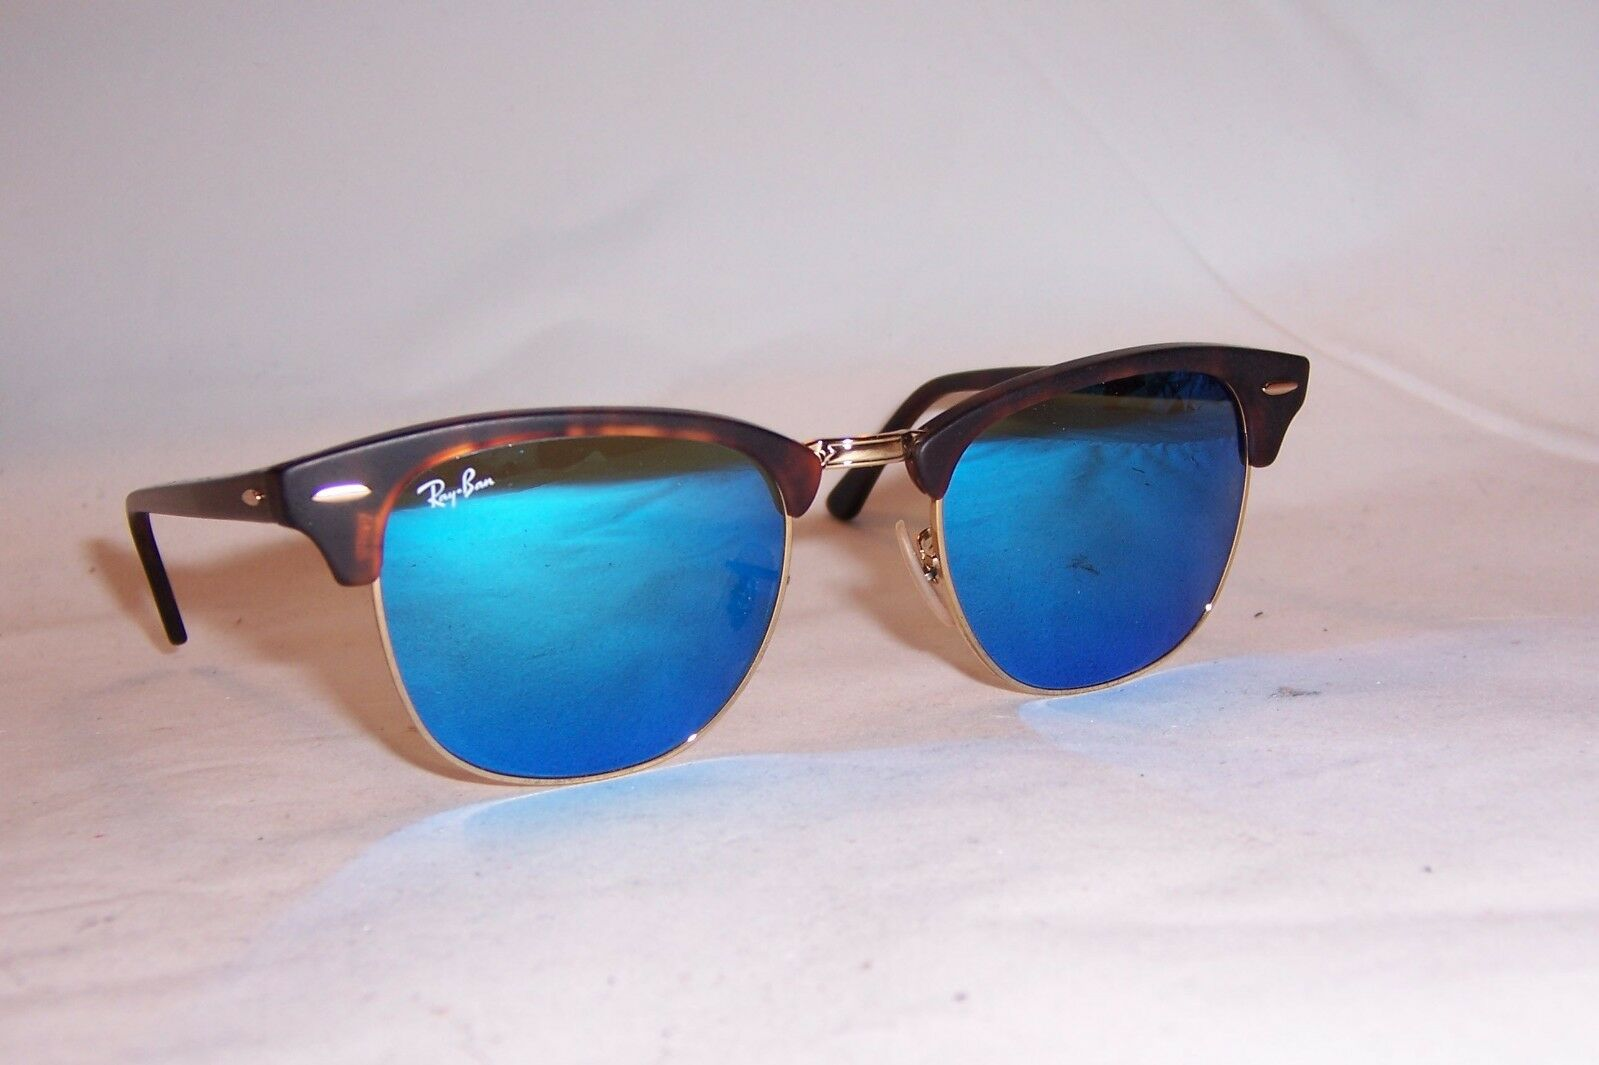 243a07c98f Ray-Ban Sunglasses Clubmaster Sand Havana gold Mirror Blue Rb3016 ...